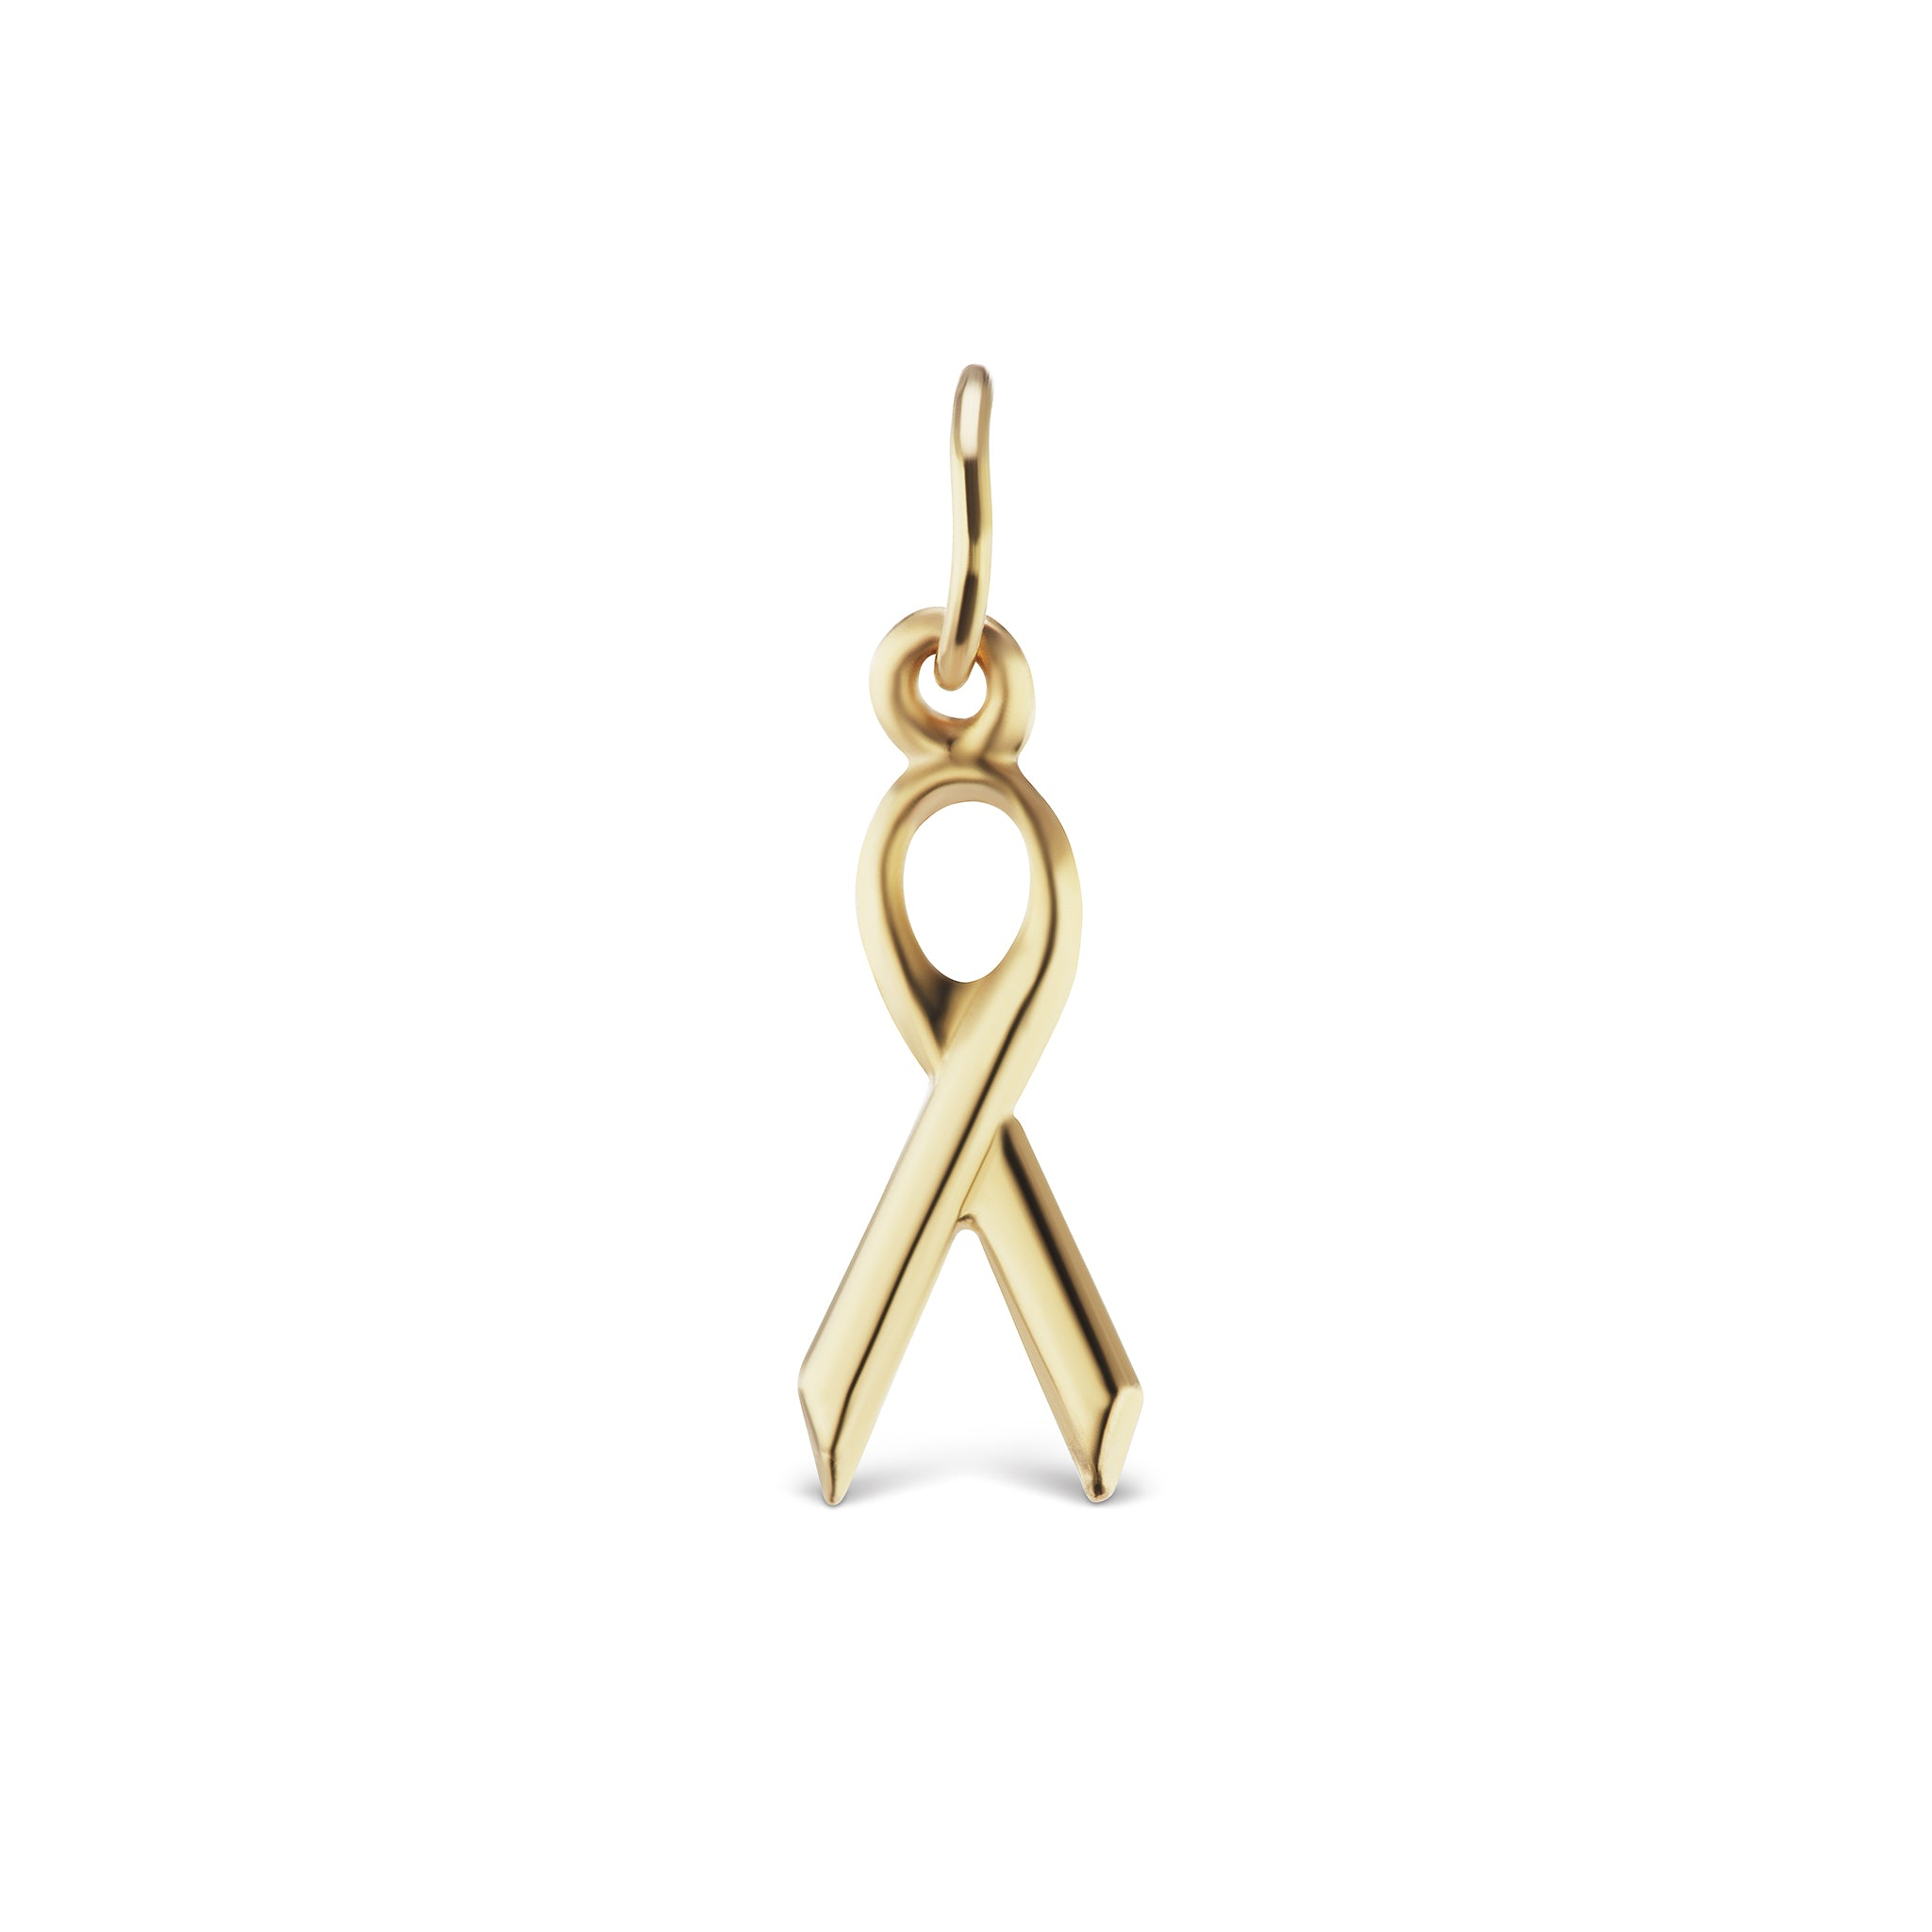 The Gold Ribbon Charm